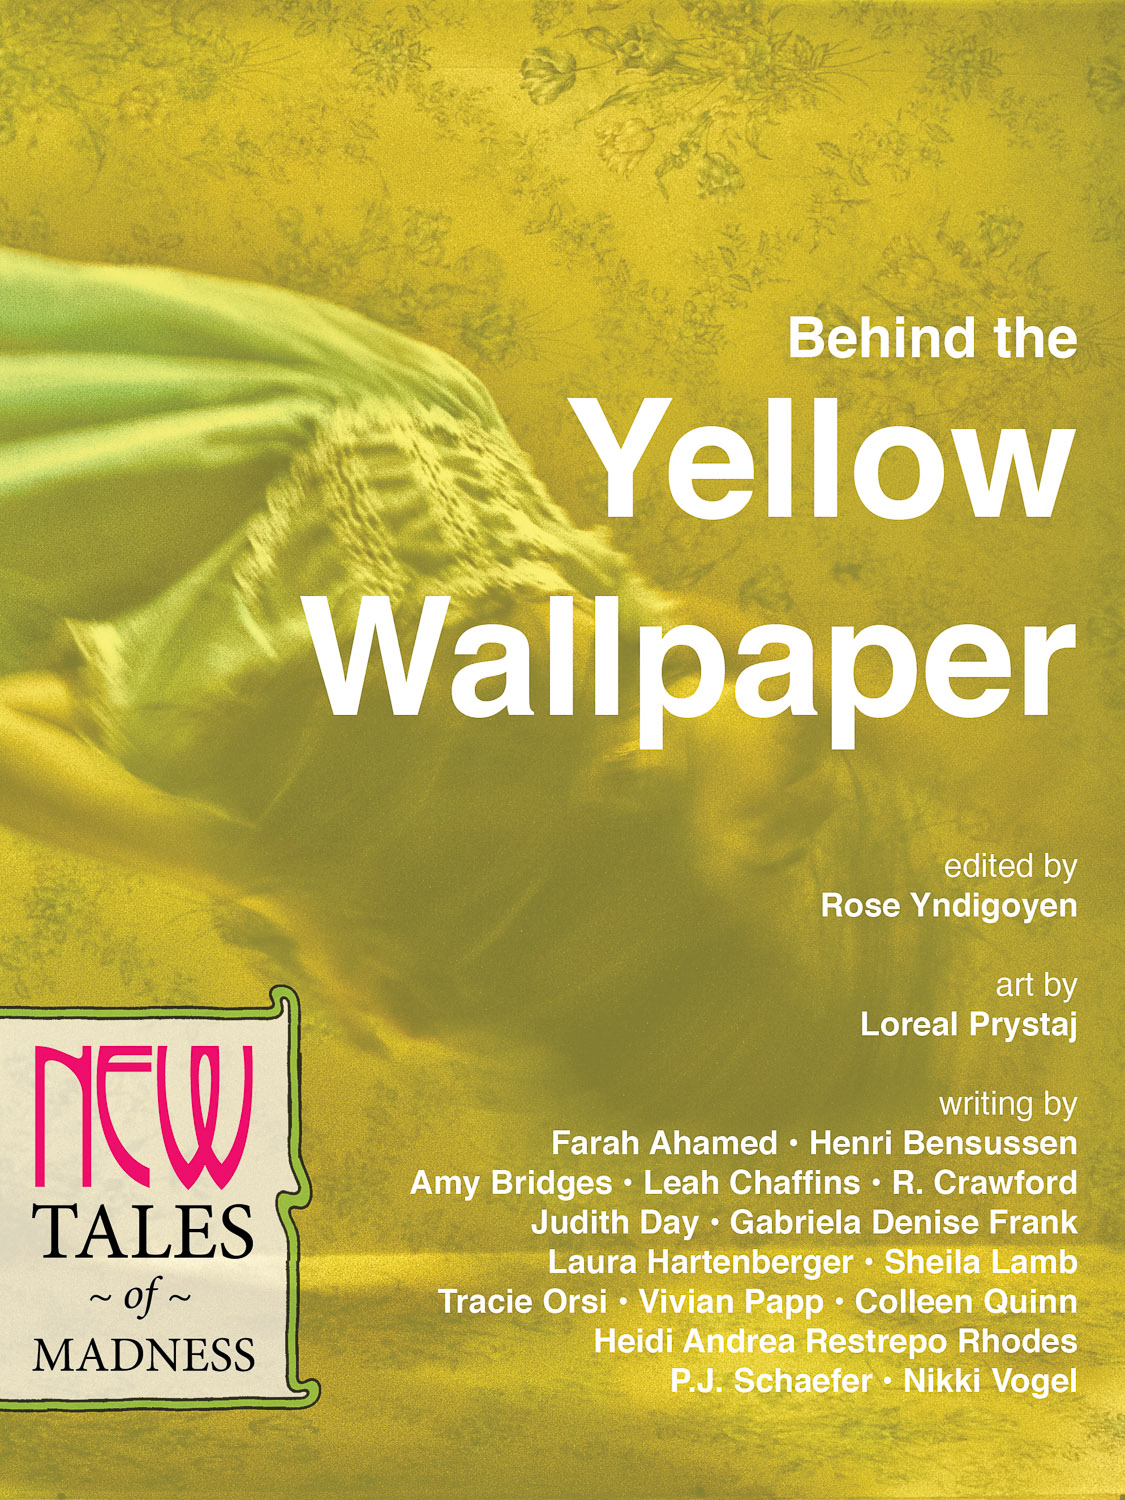 Behind the Yellow Wallpaper New Tales of Madness New Lit Salon 1125x1500